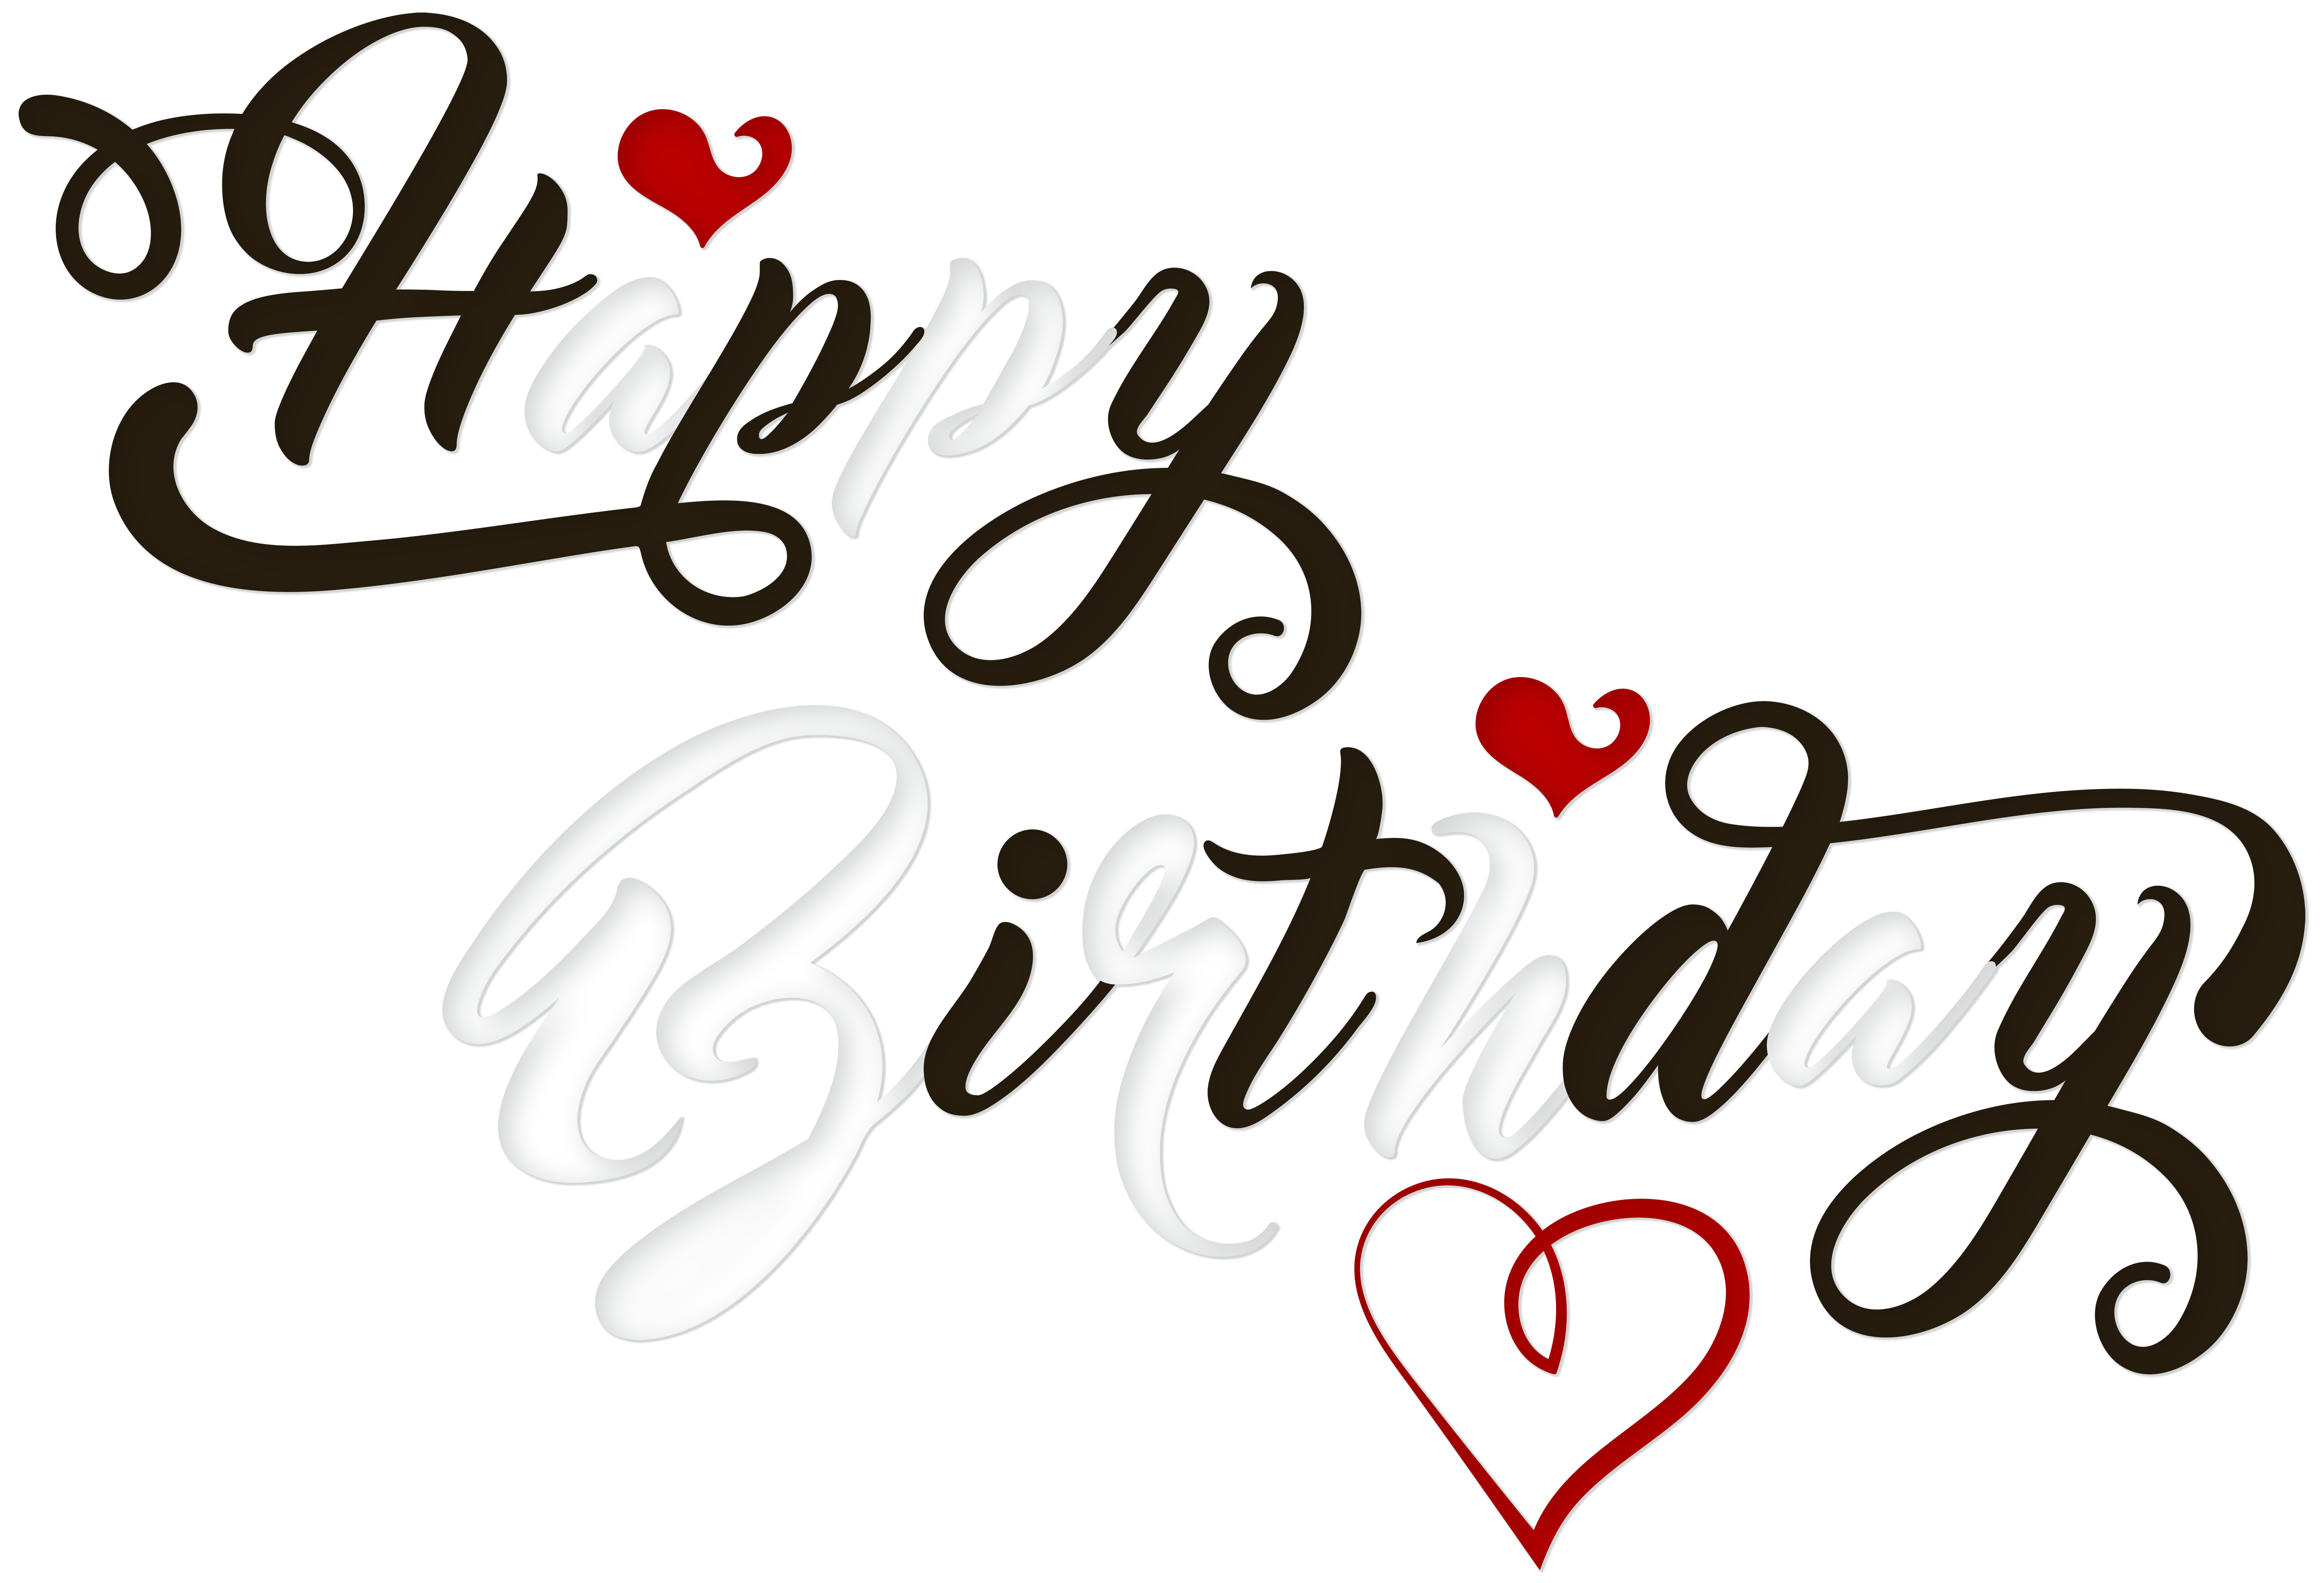 image transparent download Happy birthday clipart for him. Black and white png